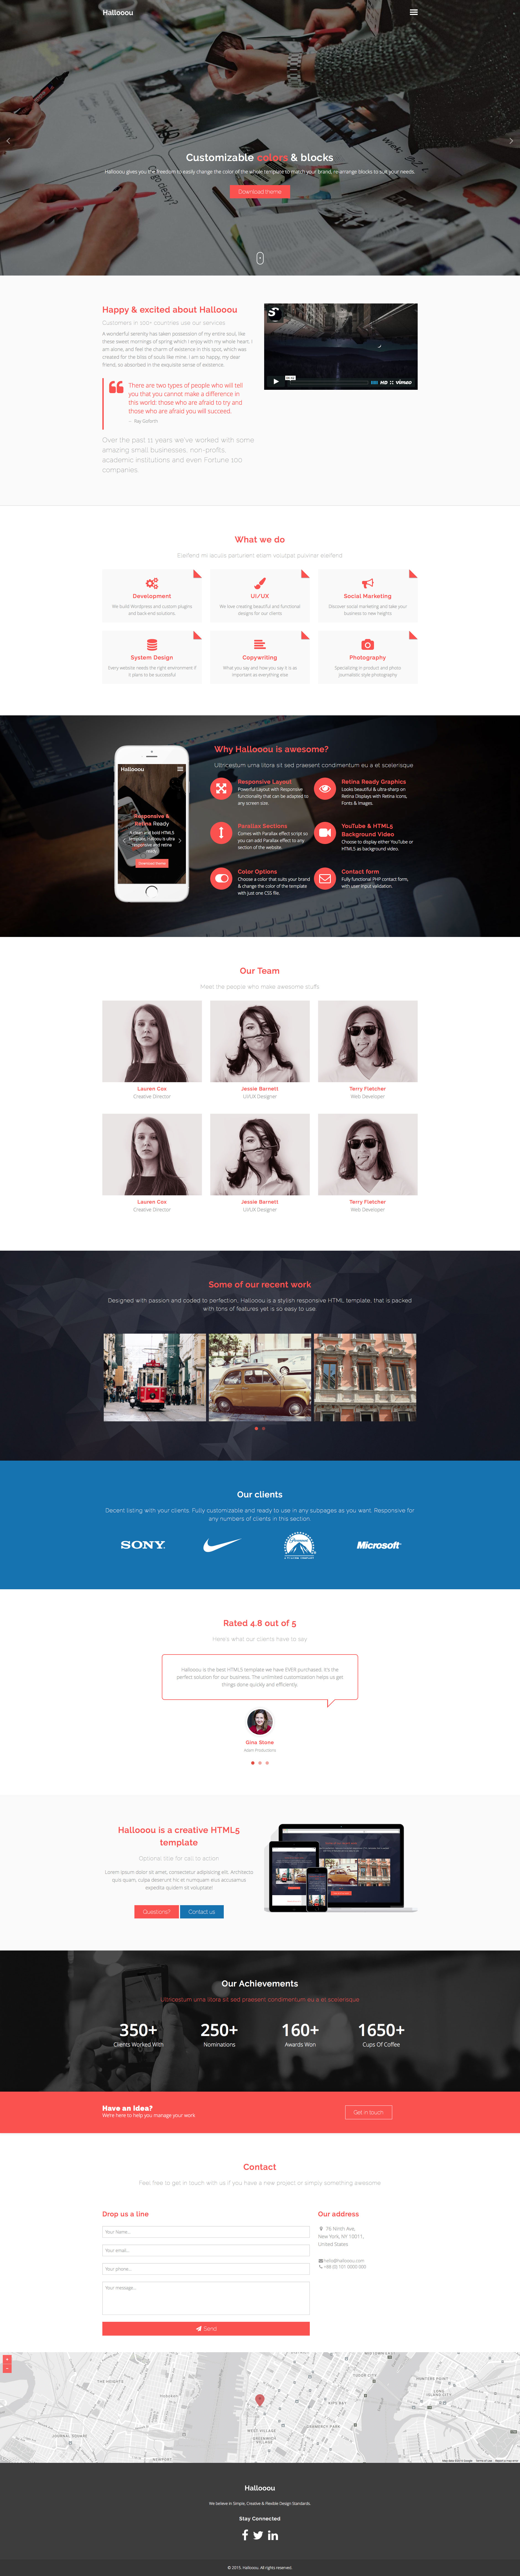 Hallooou is multi-purpose, creative, one page parallax, responsive HTML5 template for portfolio showcase, modern businesses, personal use. The template is fully responsive and built with Bootstrap 3 framework.